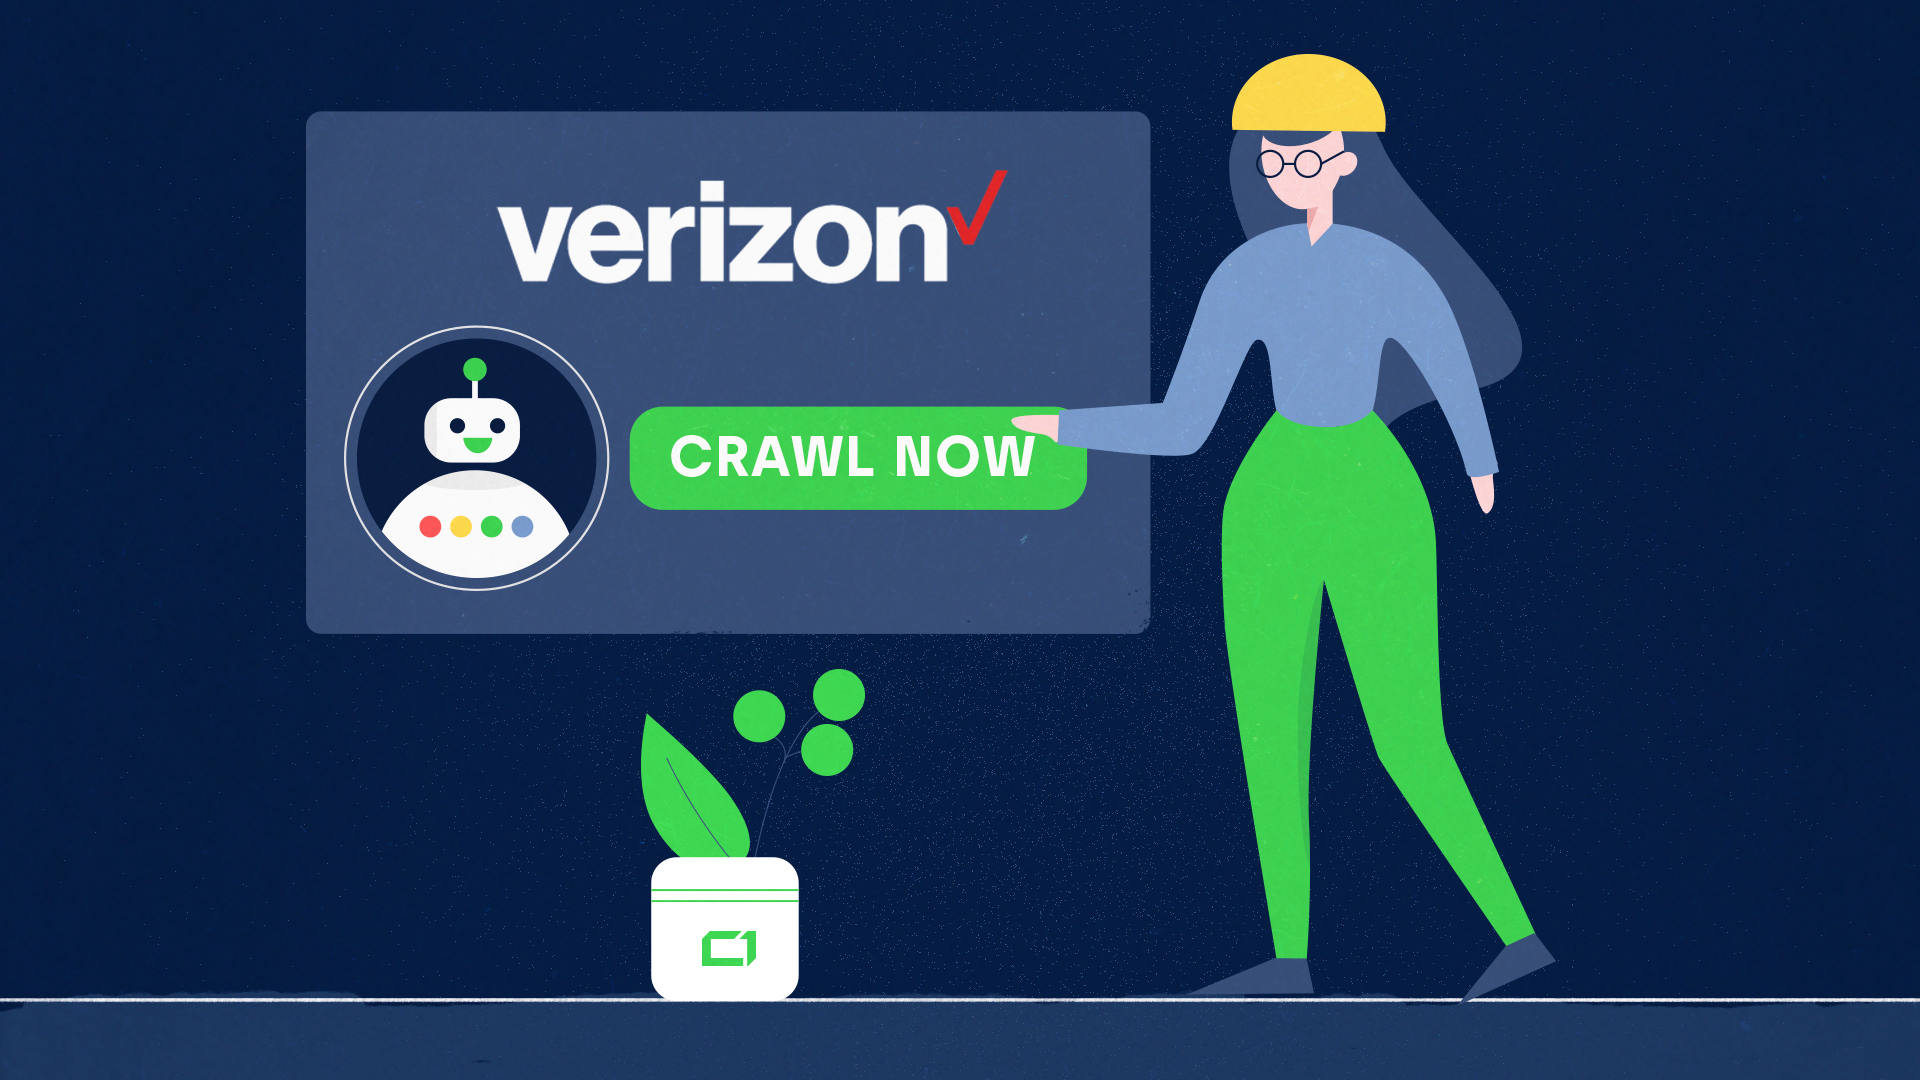 Verizon, Can We Crawl You Now?